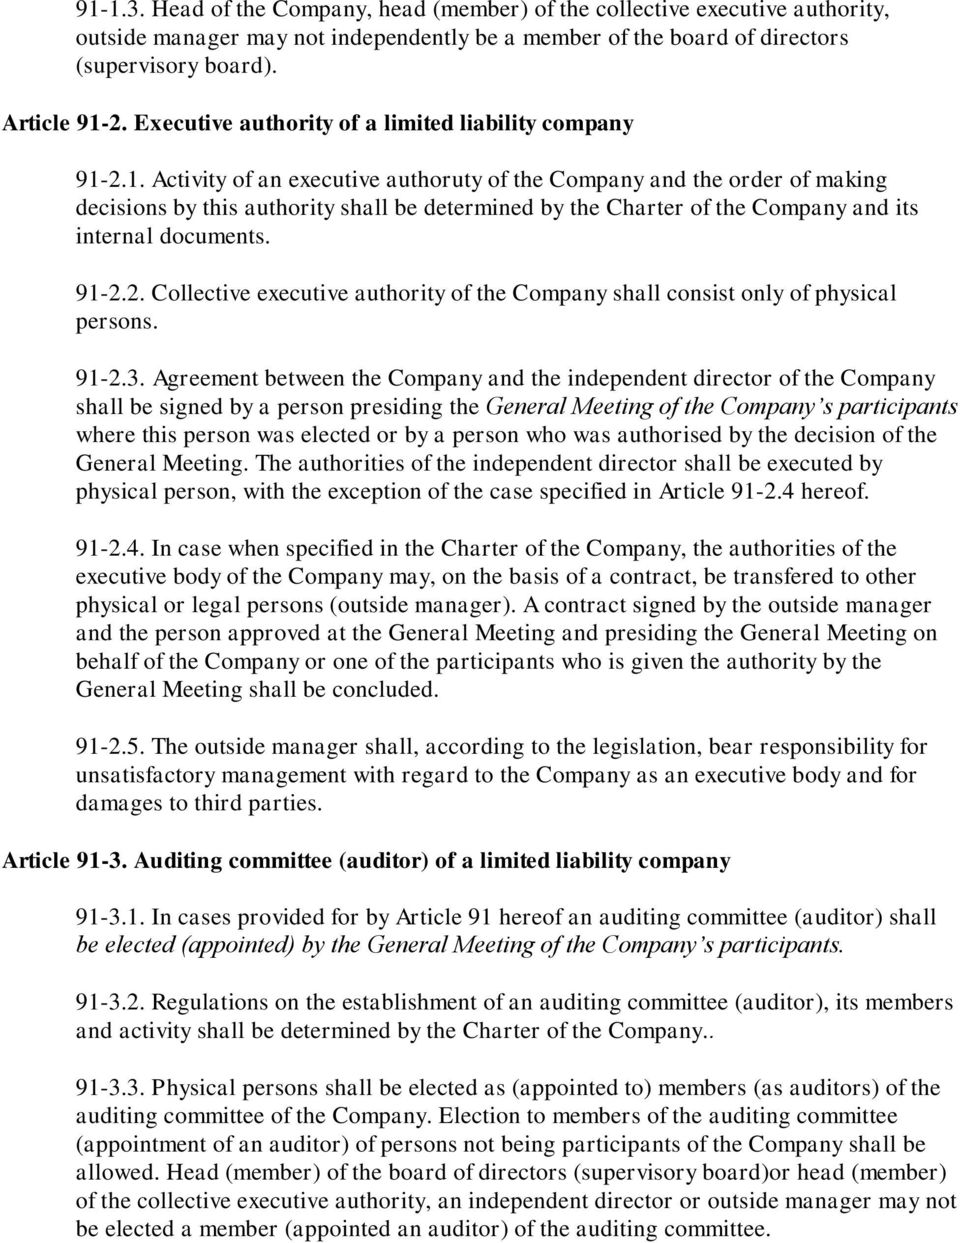 2.1. Activity of an executive authoruty of the Company and the order of making decisions by this authority shall be determined by the Charter of the Company and its internal documents. 91-2.2. Collective executive authority of the Company shall consist only of physical persons.